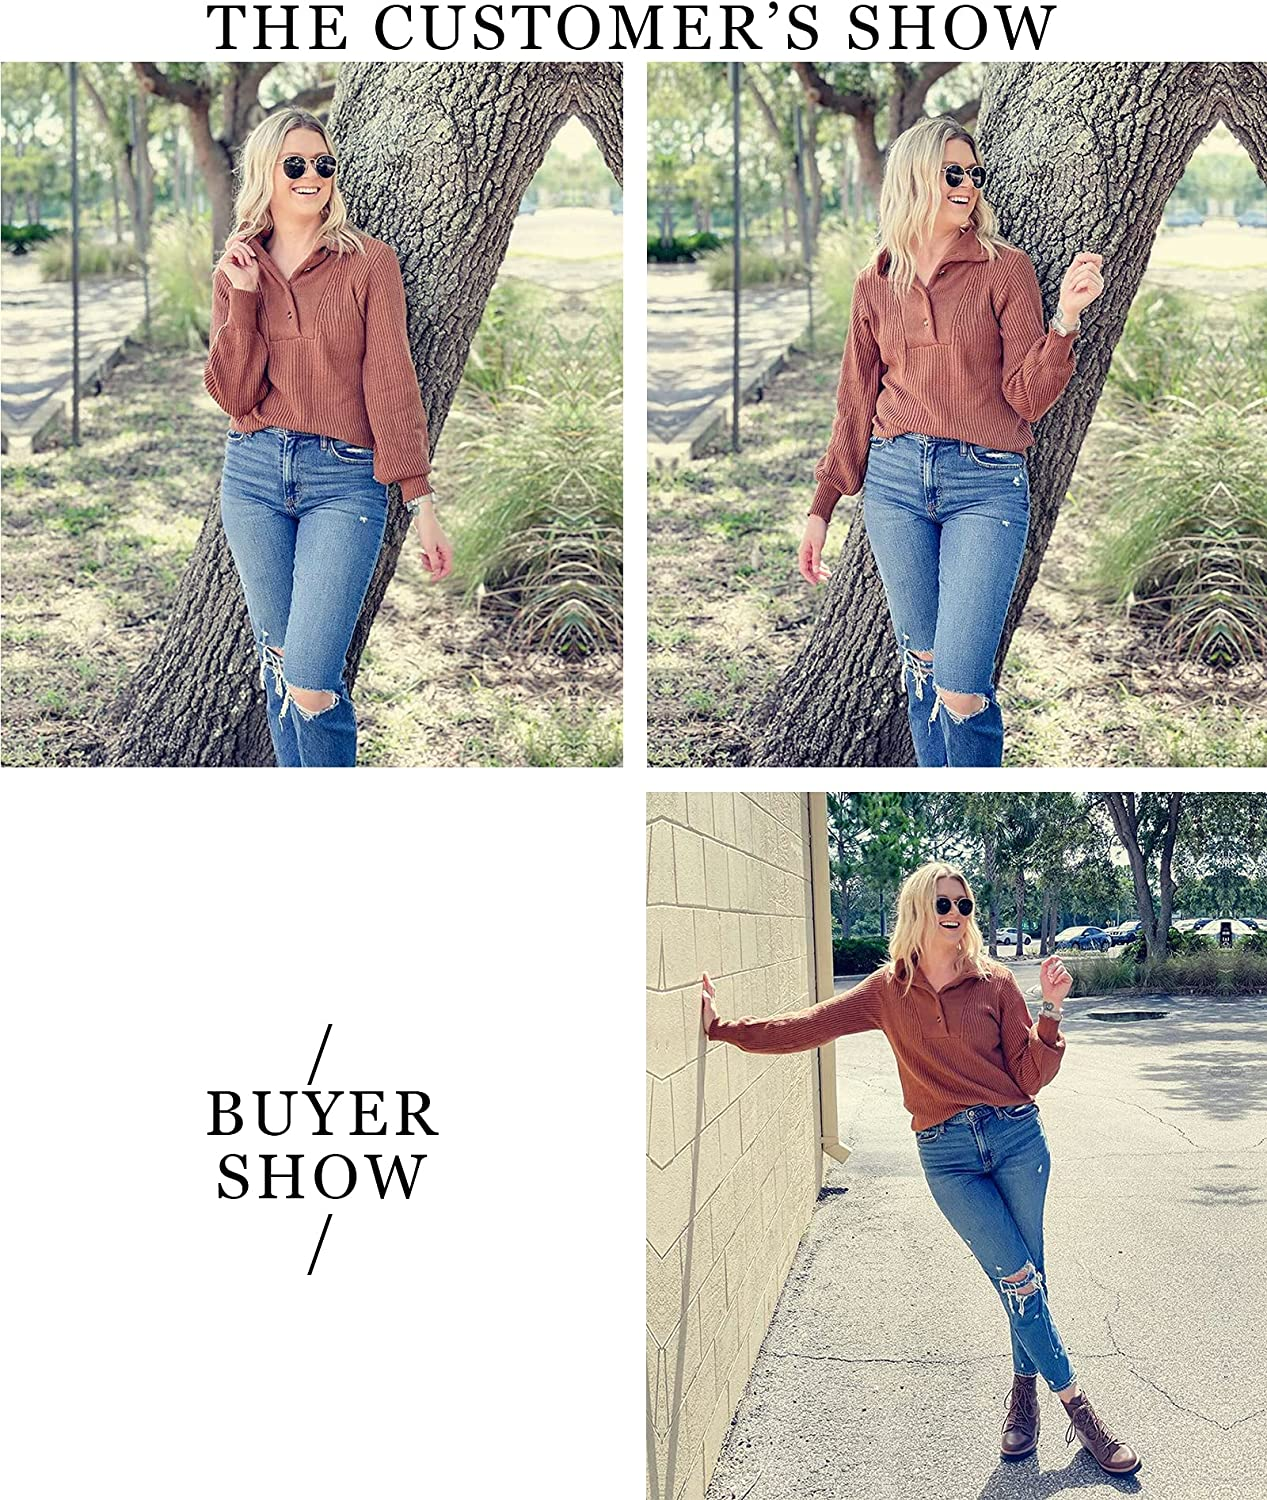 BTFBM Women Casual Button Up Turtleneck Sweaters Long Sleeve Knitted Solid Color Soft Loose Fall Winter Pullover Sweater